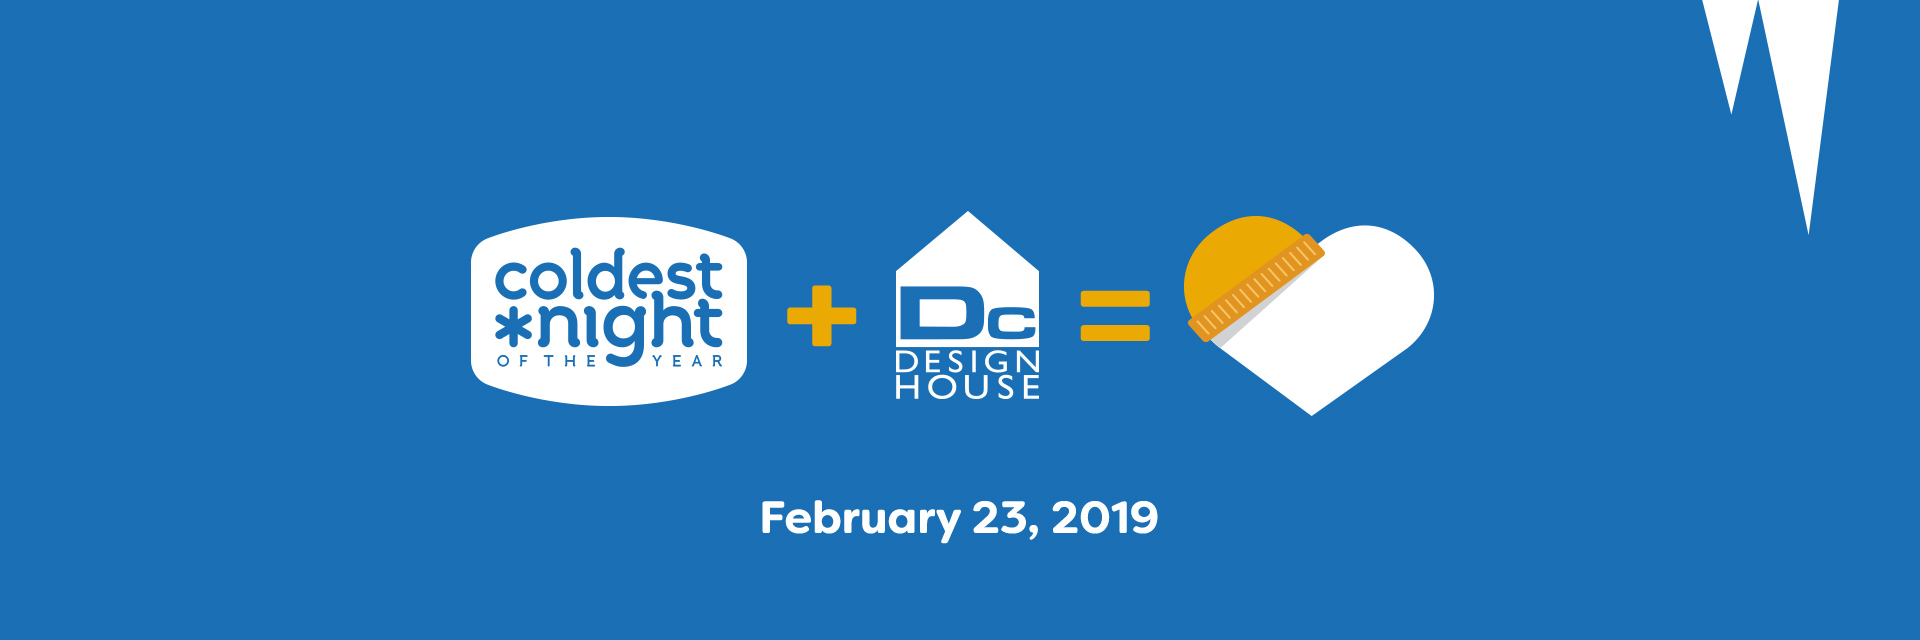 Dc Presents: Coldest Night of the Year 2019